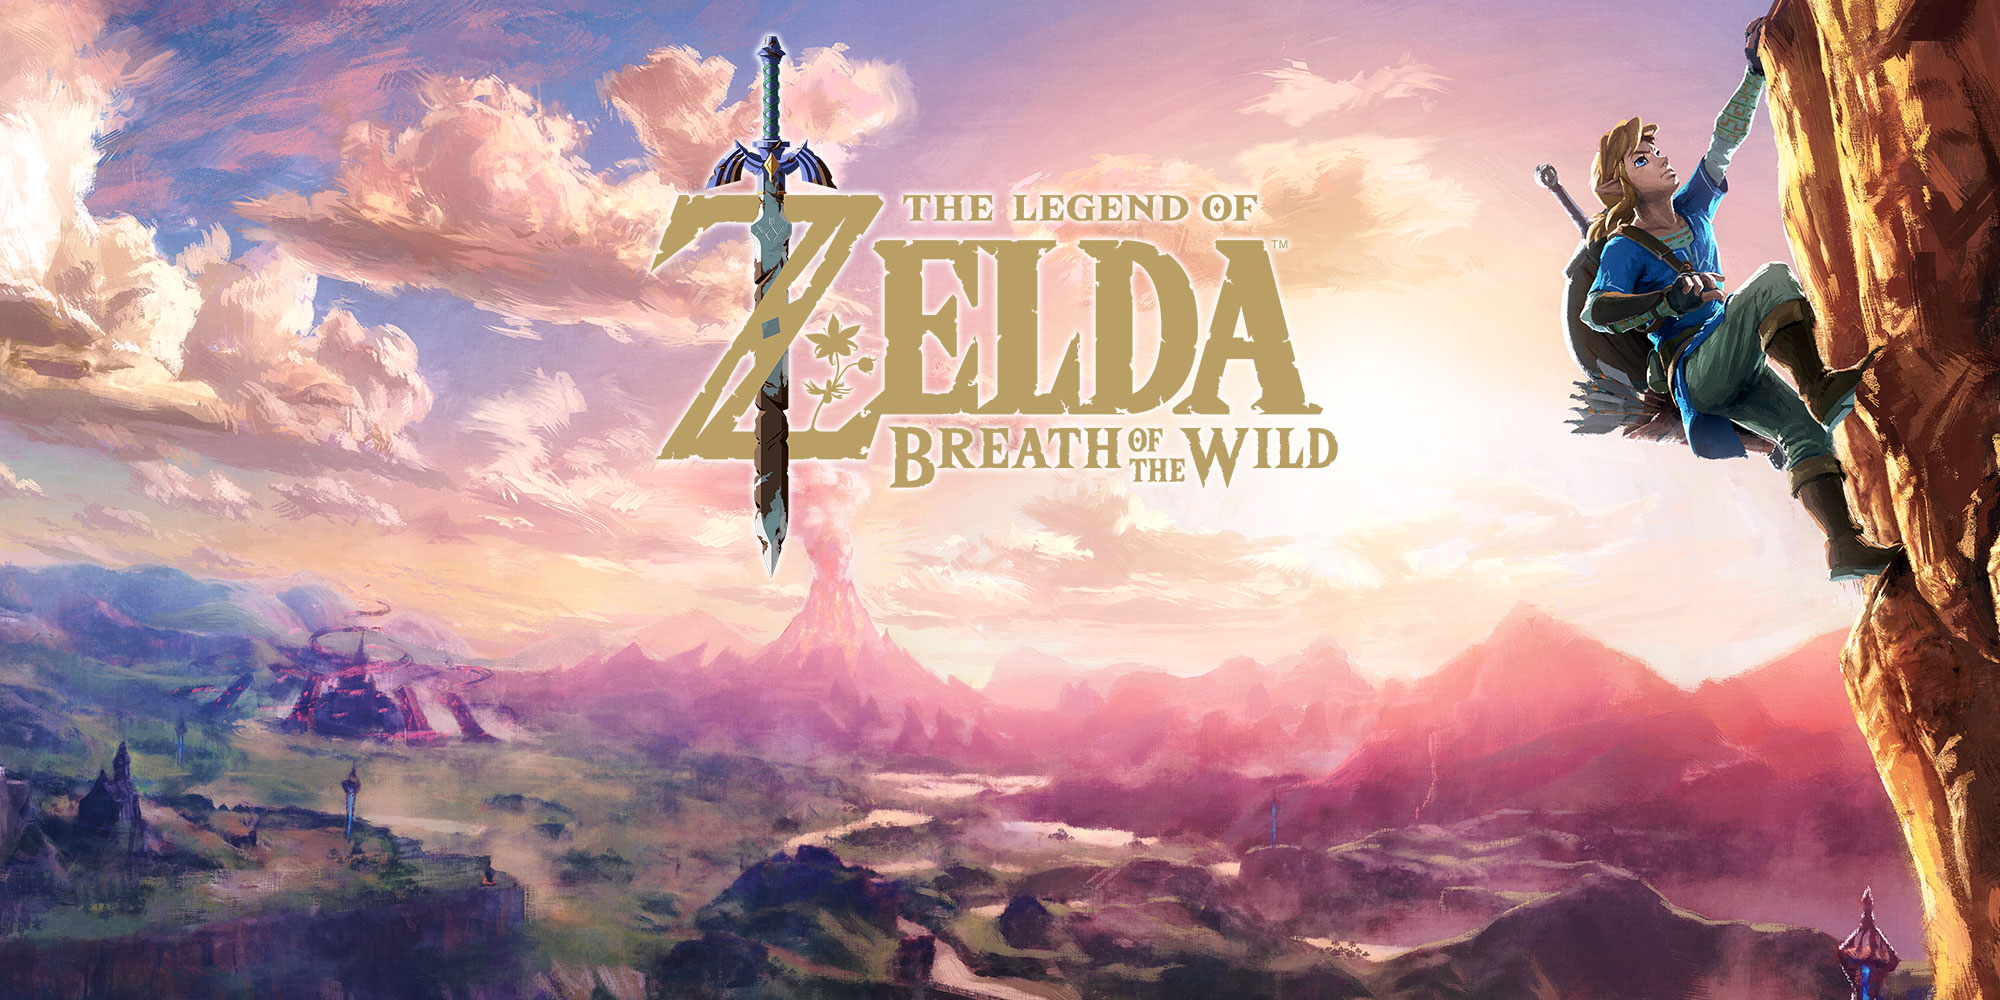 Equip yourself for adventure at our updated The Legend of Zelda: Breath of the Wild website